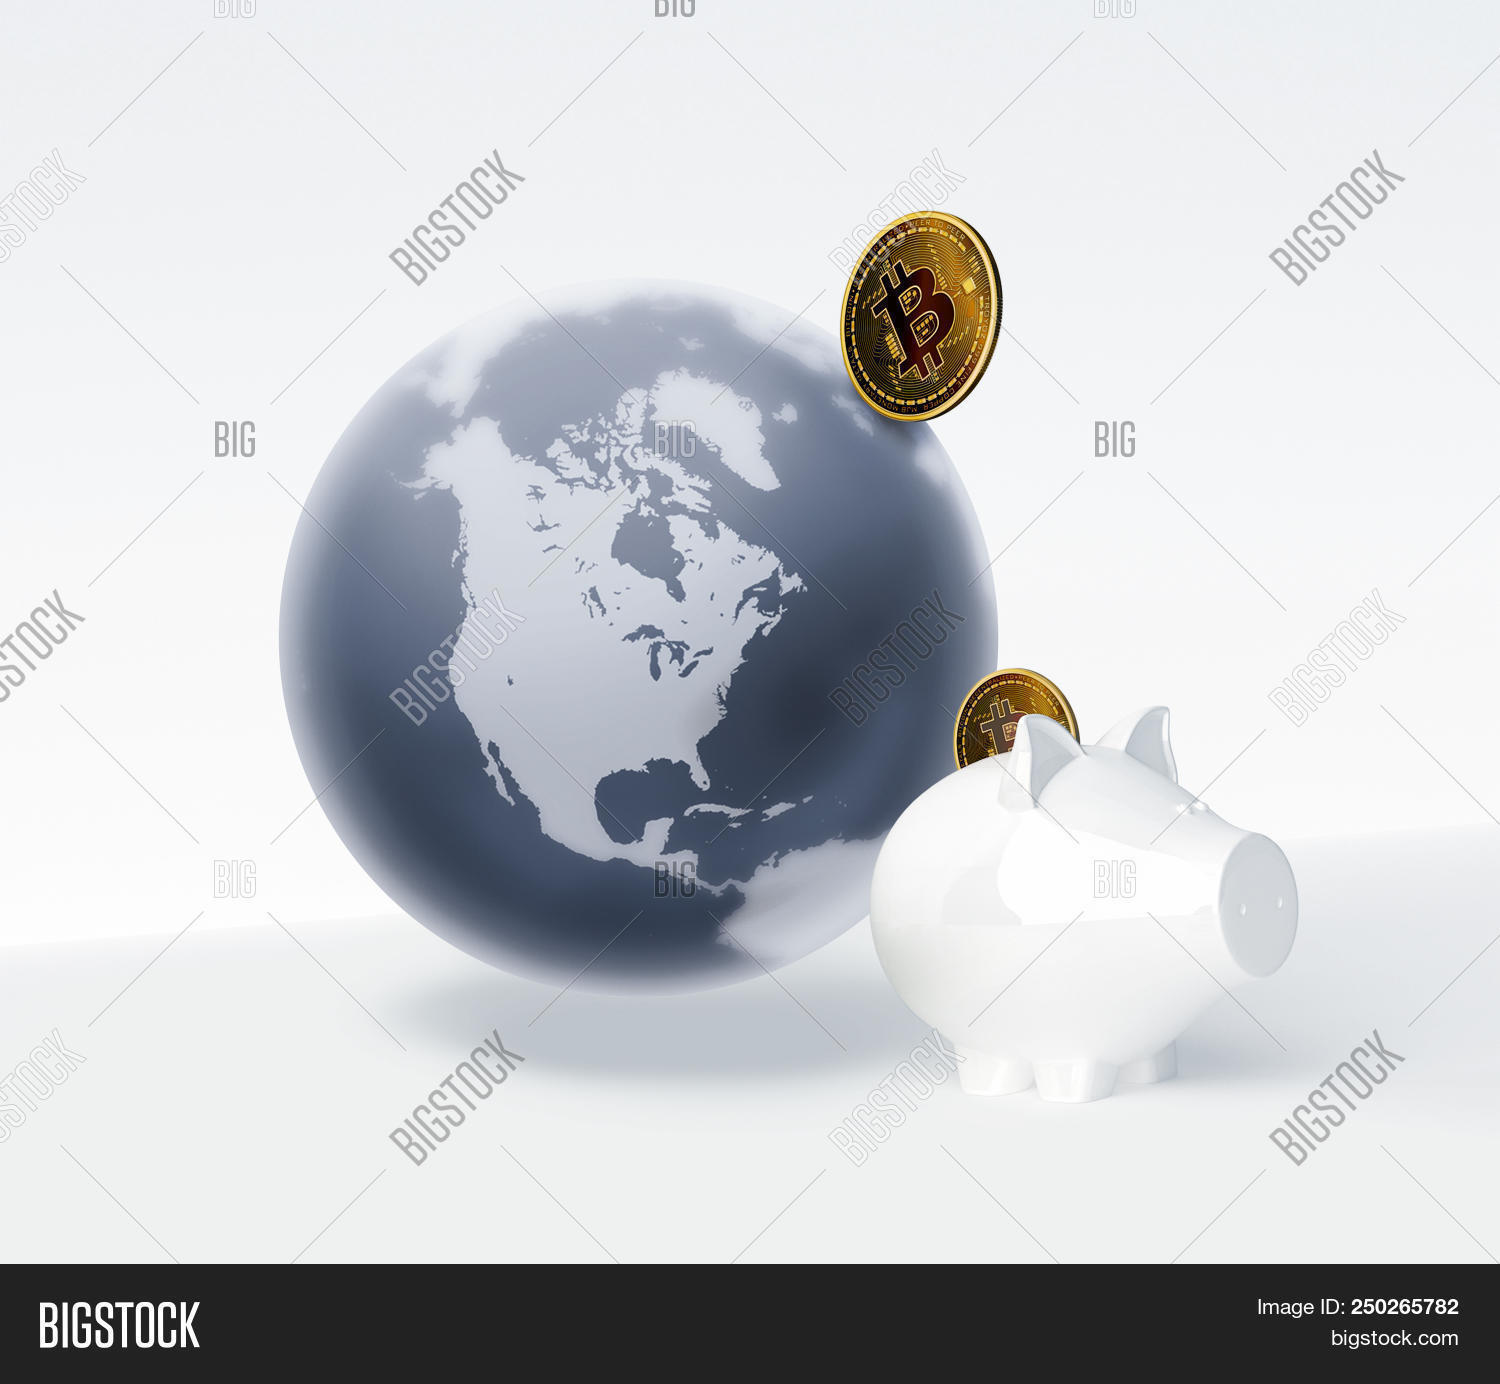 Bitcoin Symbol World Image Photo Free Trial Bigstock